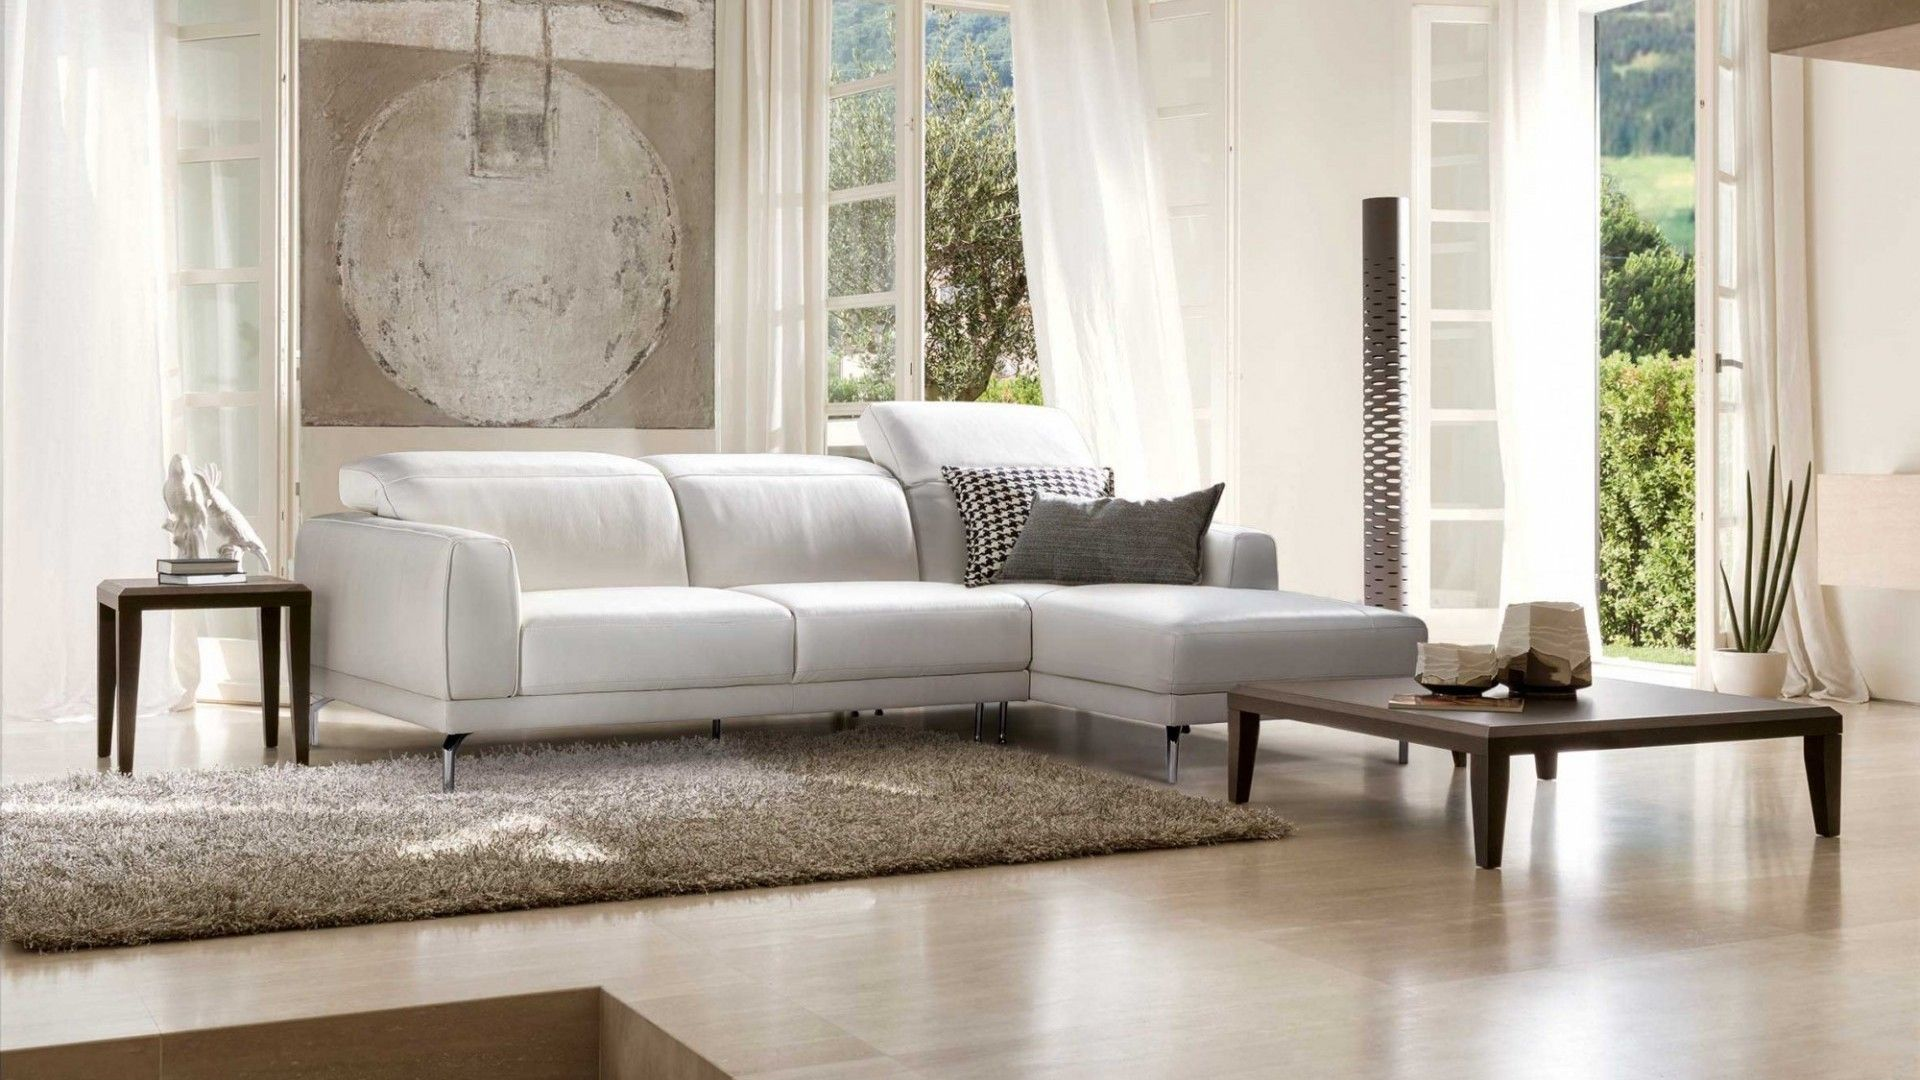 quadro-sectional-copia-1920x1080